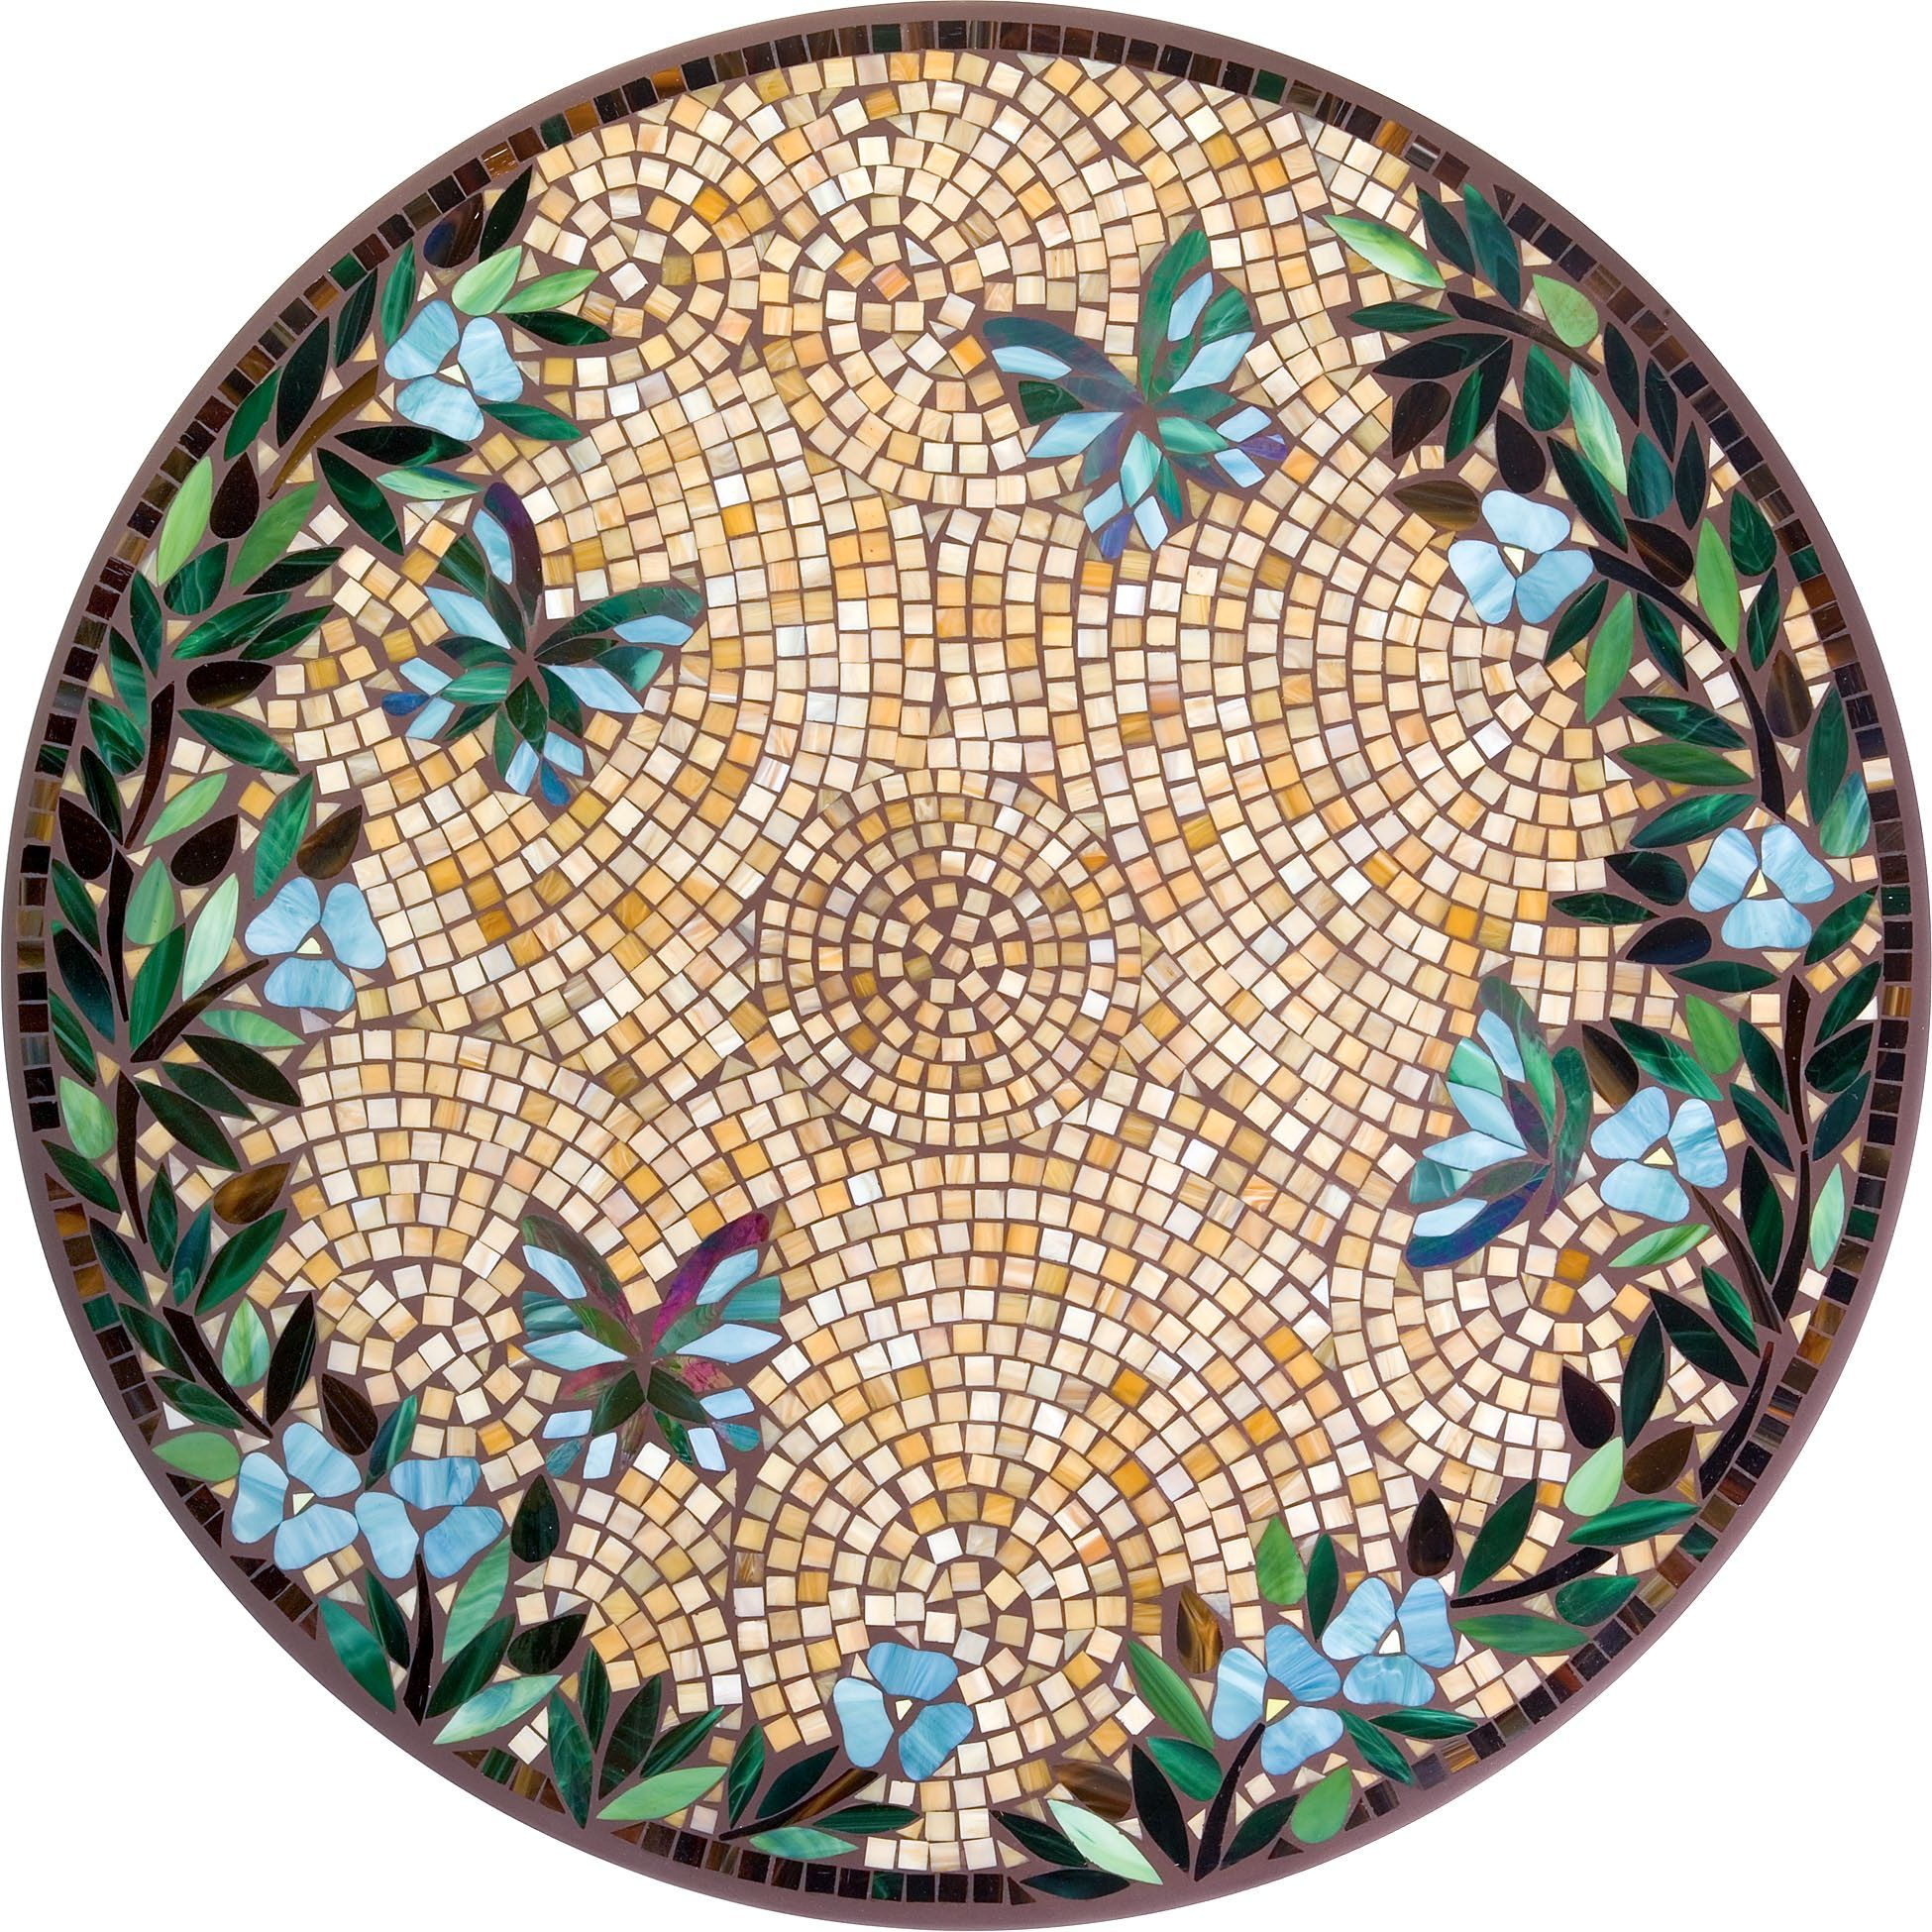 Square Mosaic Table Top Designs - Knf caramel butterfly mosaic table